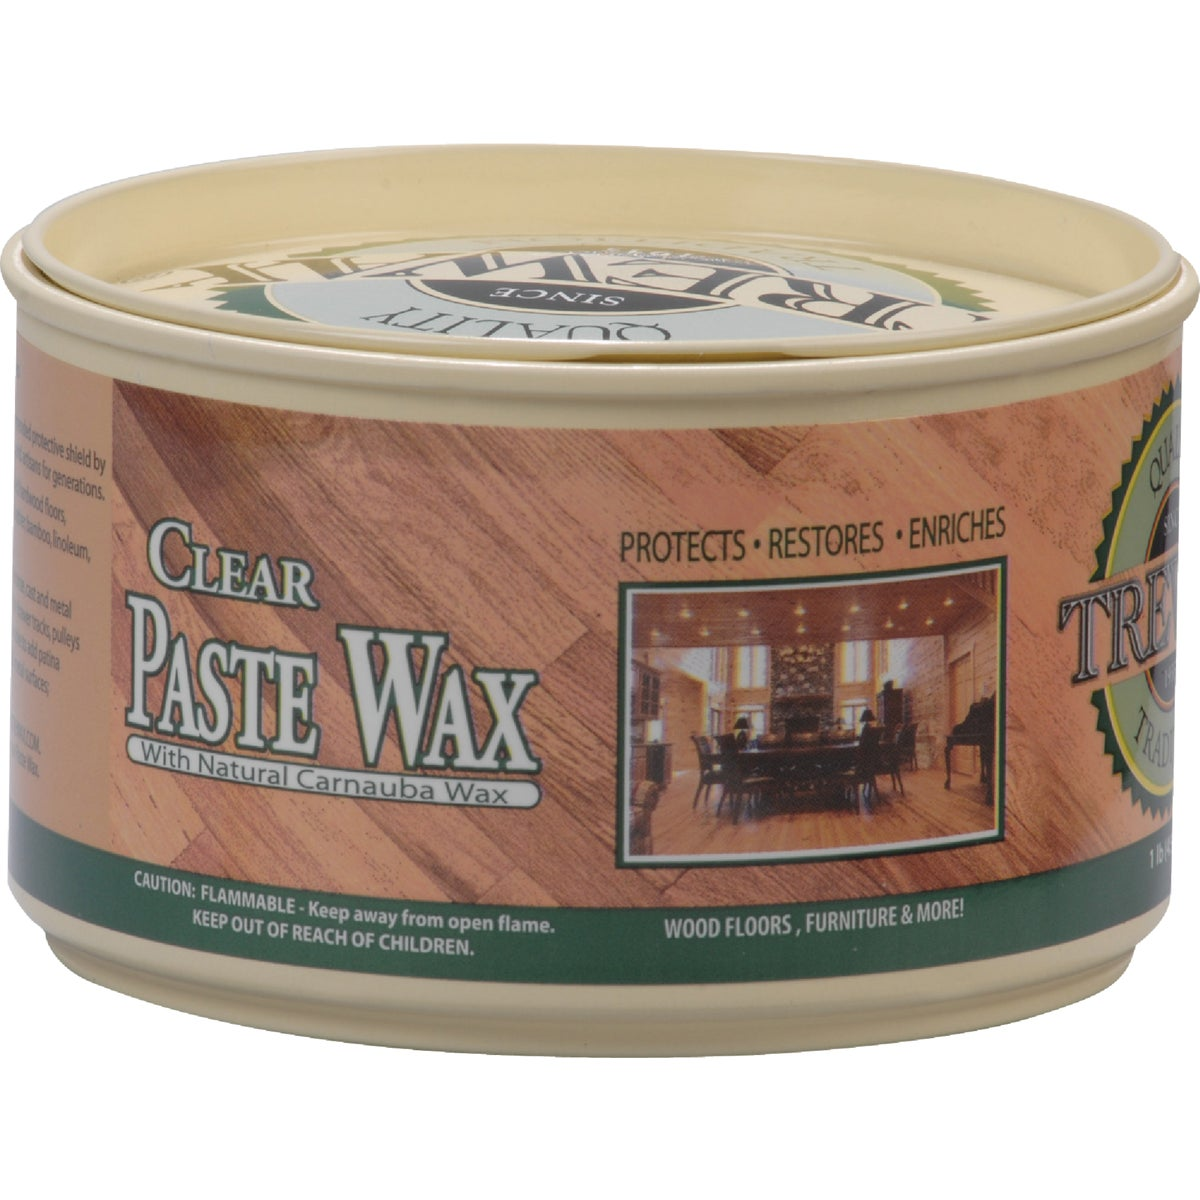 12.35OZ CLEAR PASTE WAX - 887101016 by Beaumont Products